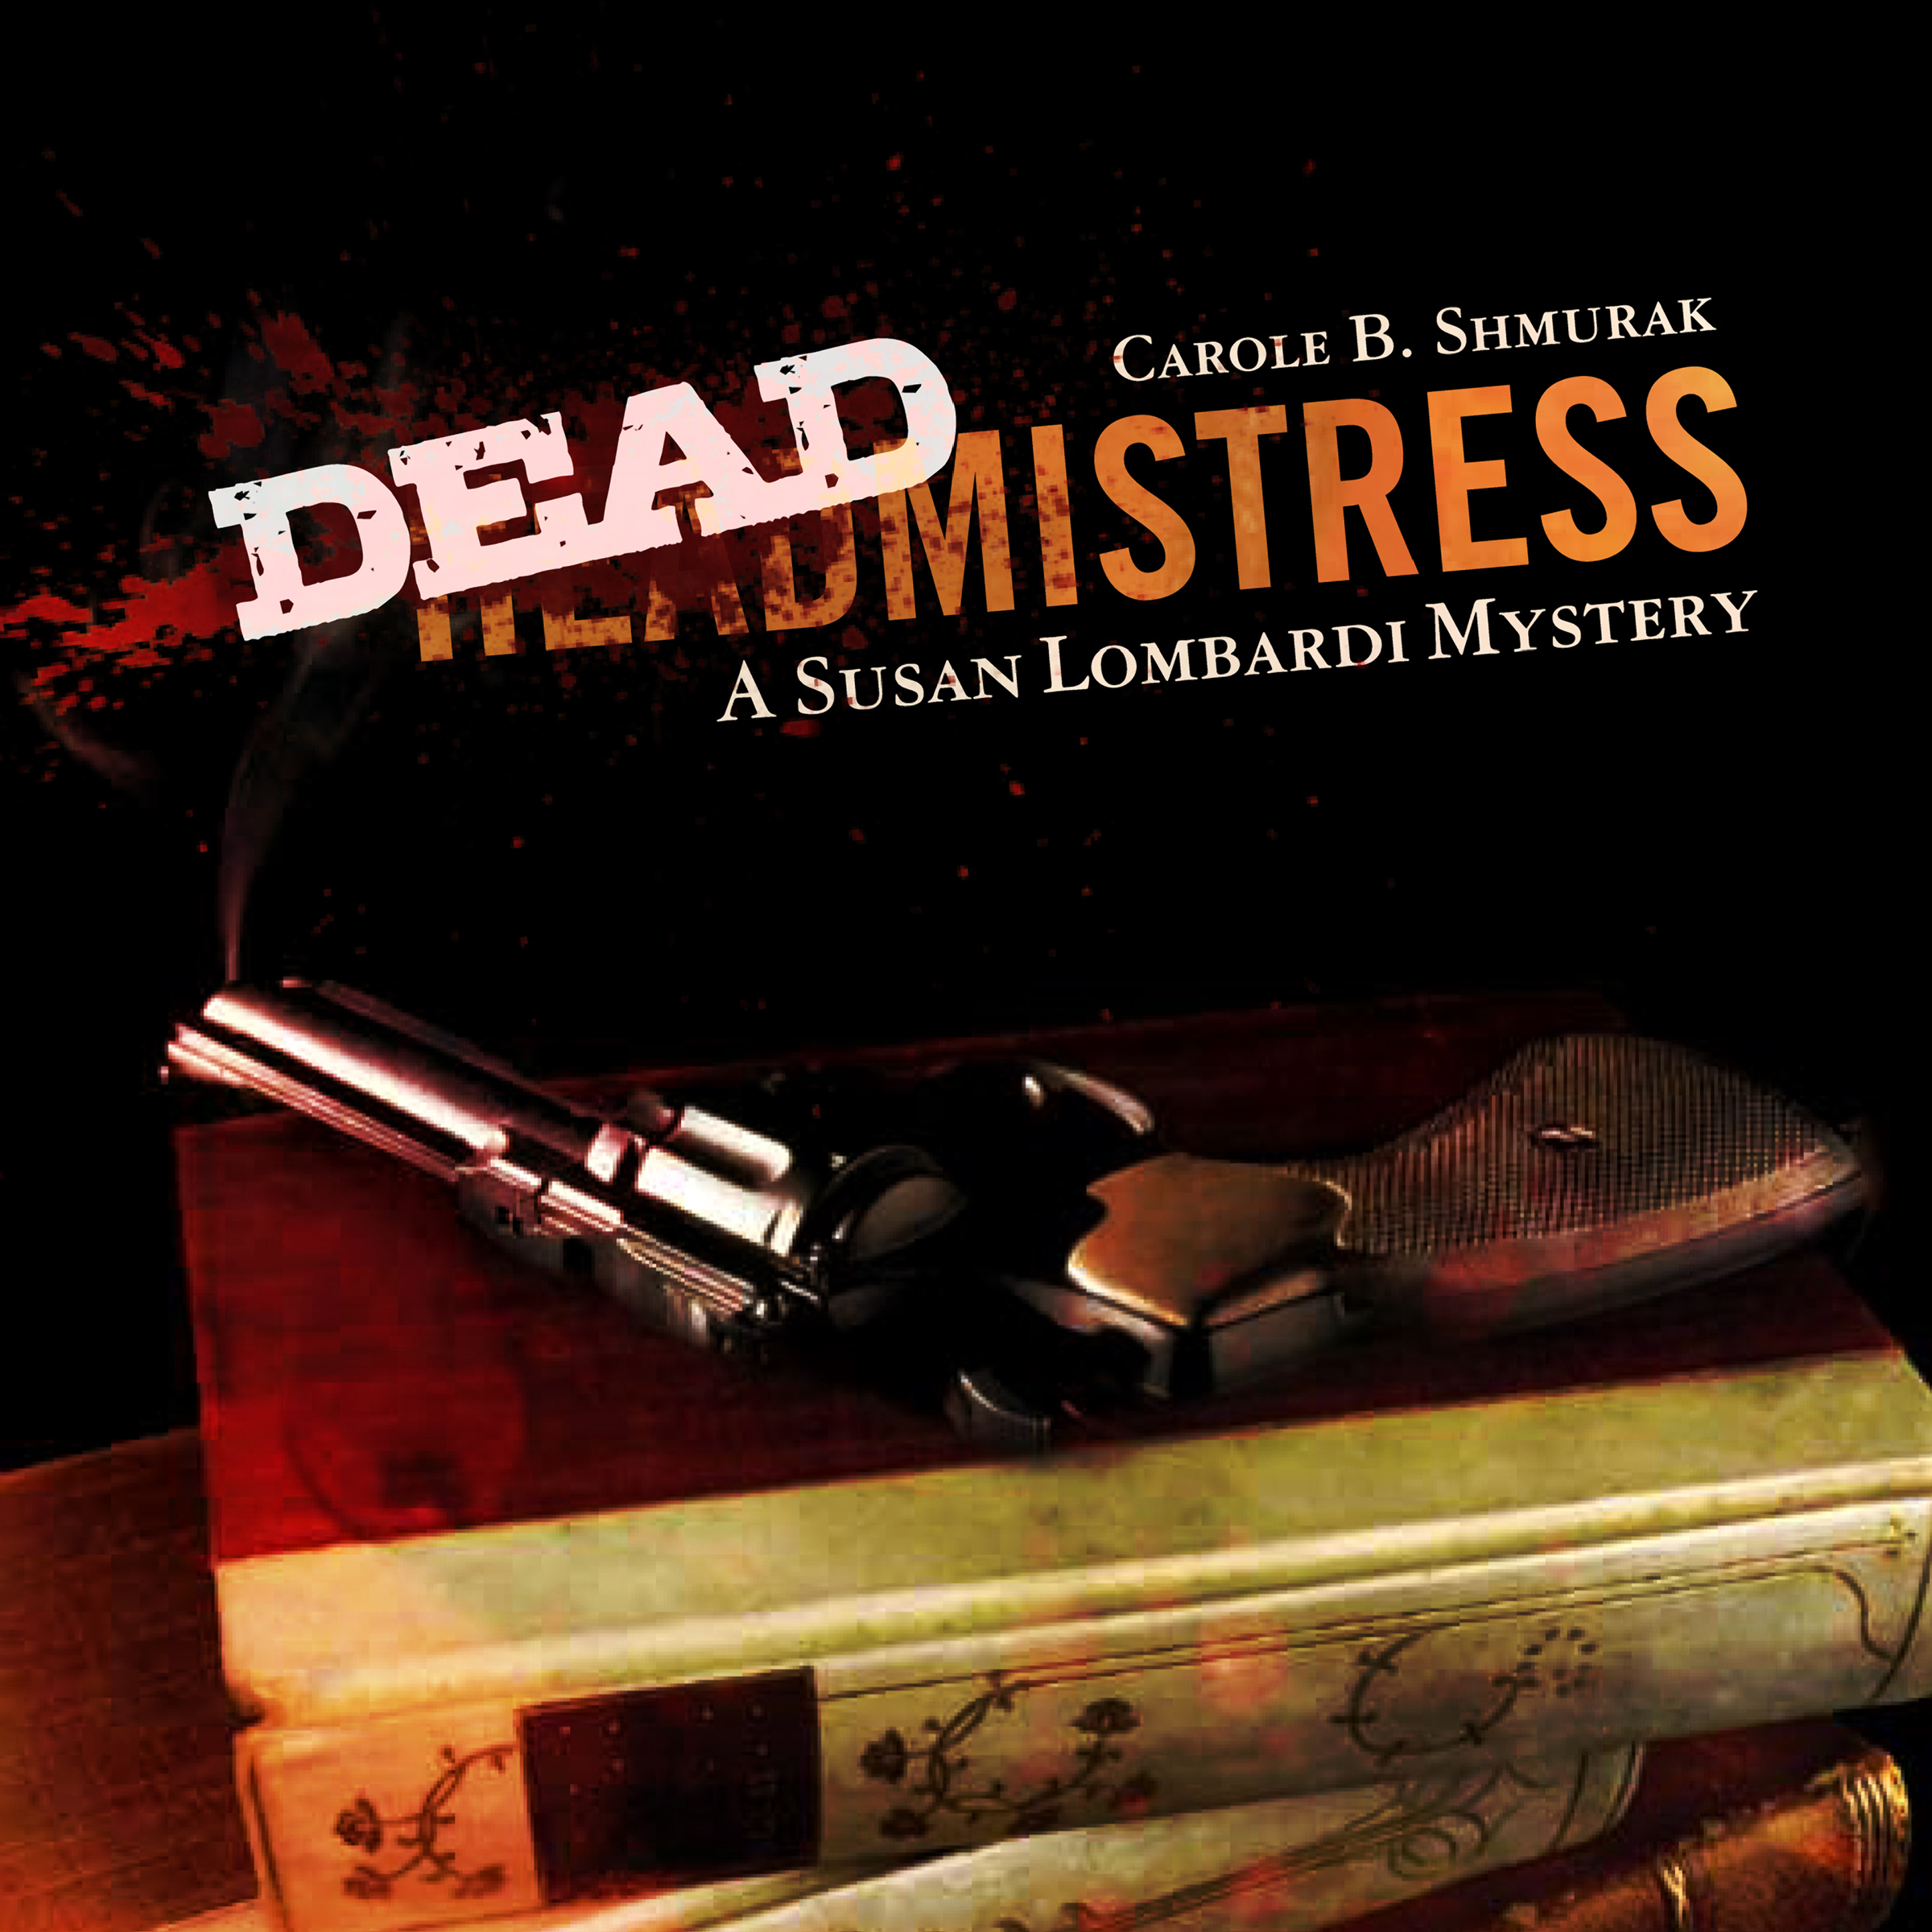 Deadmistress is now available as an audiobook